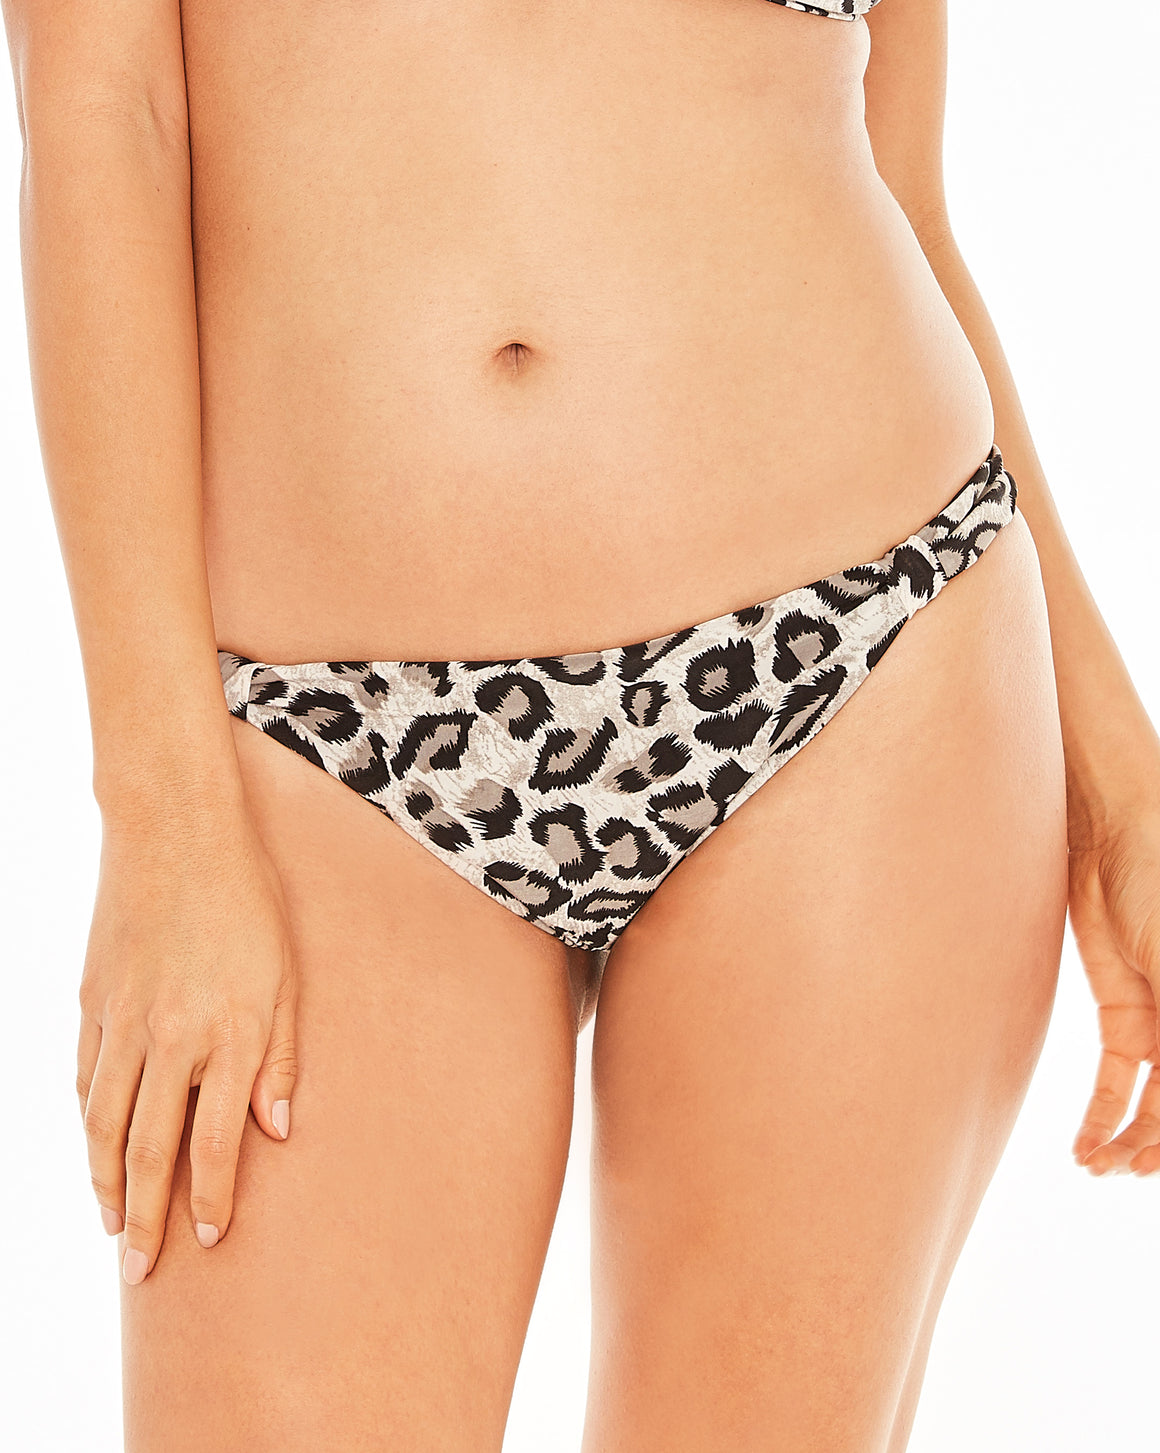 Reversible Leopard style print bottom with adjustable sliders and shirred backside